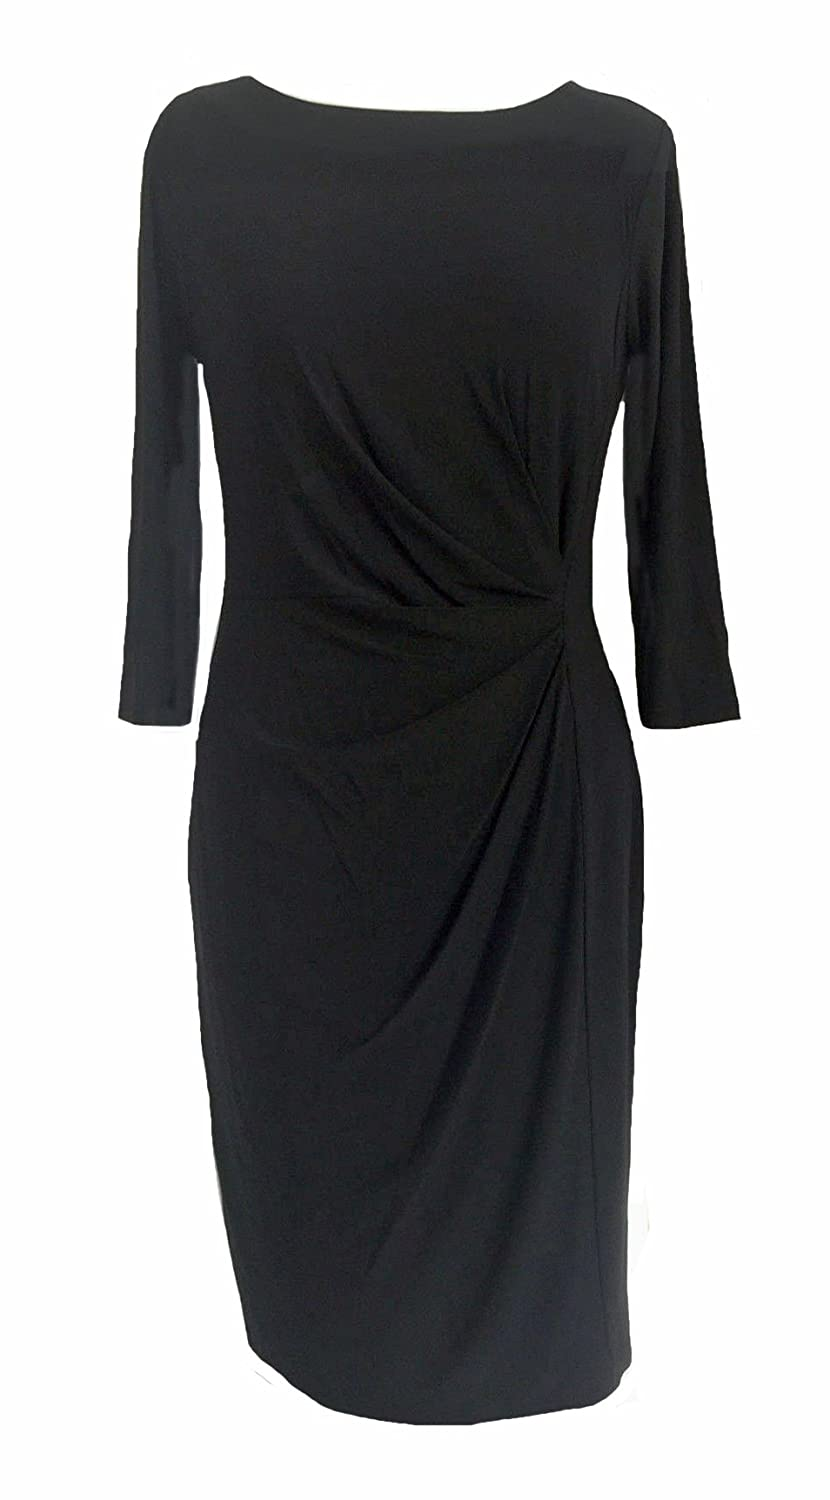 Ladies Black Ruched Gathered Side Slinky Bodycon Dress